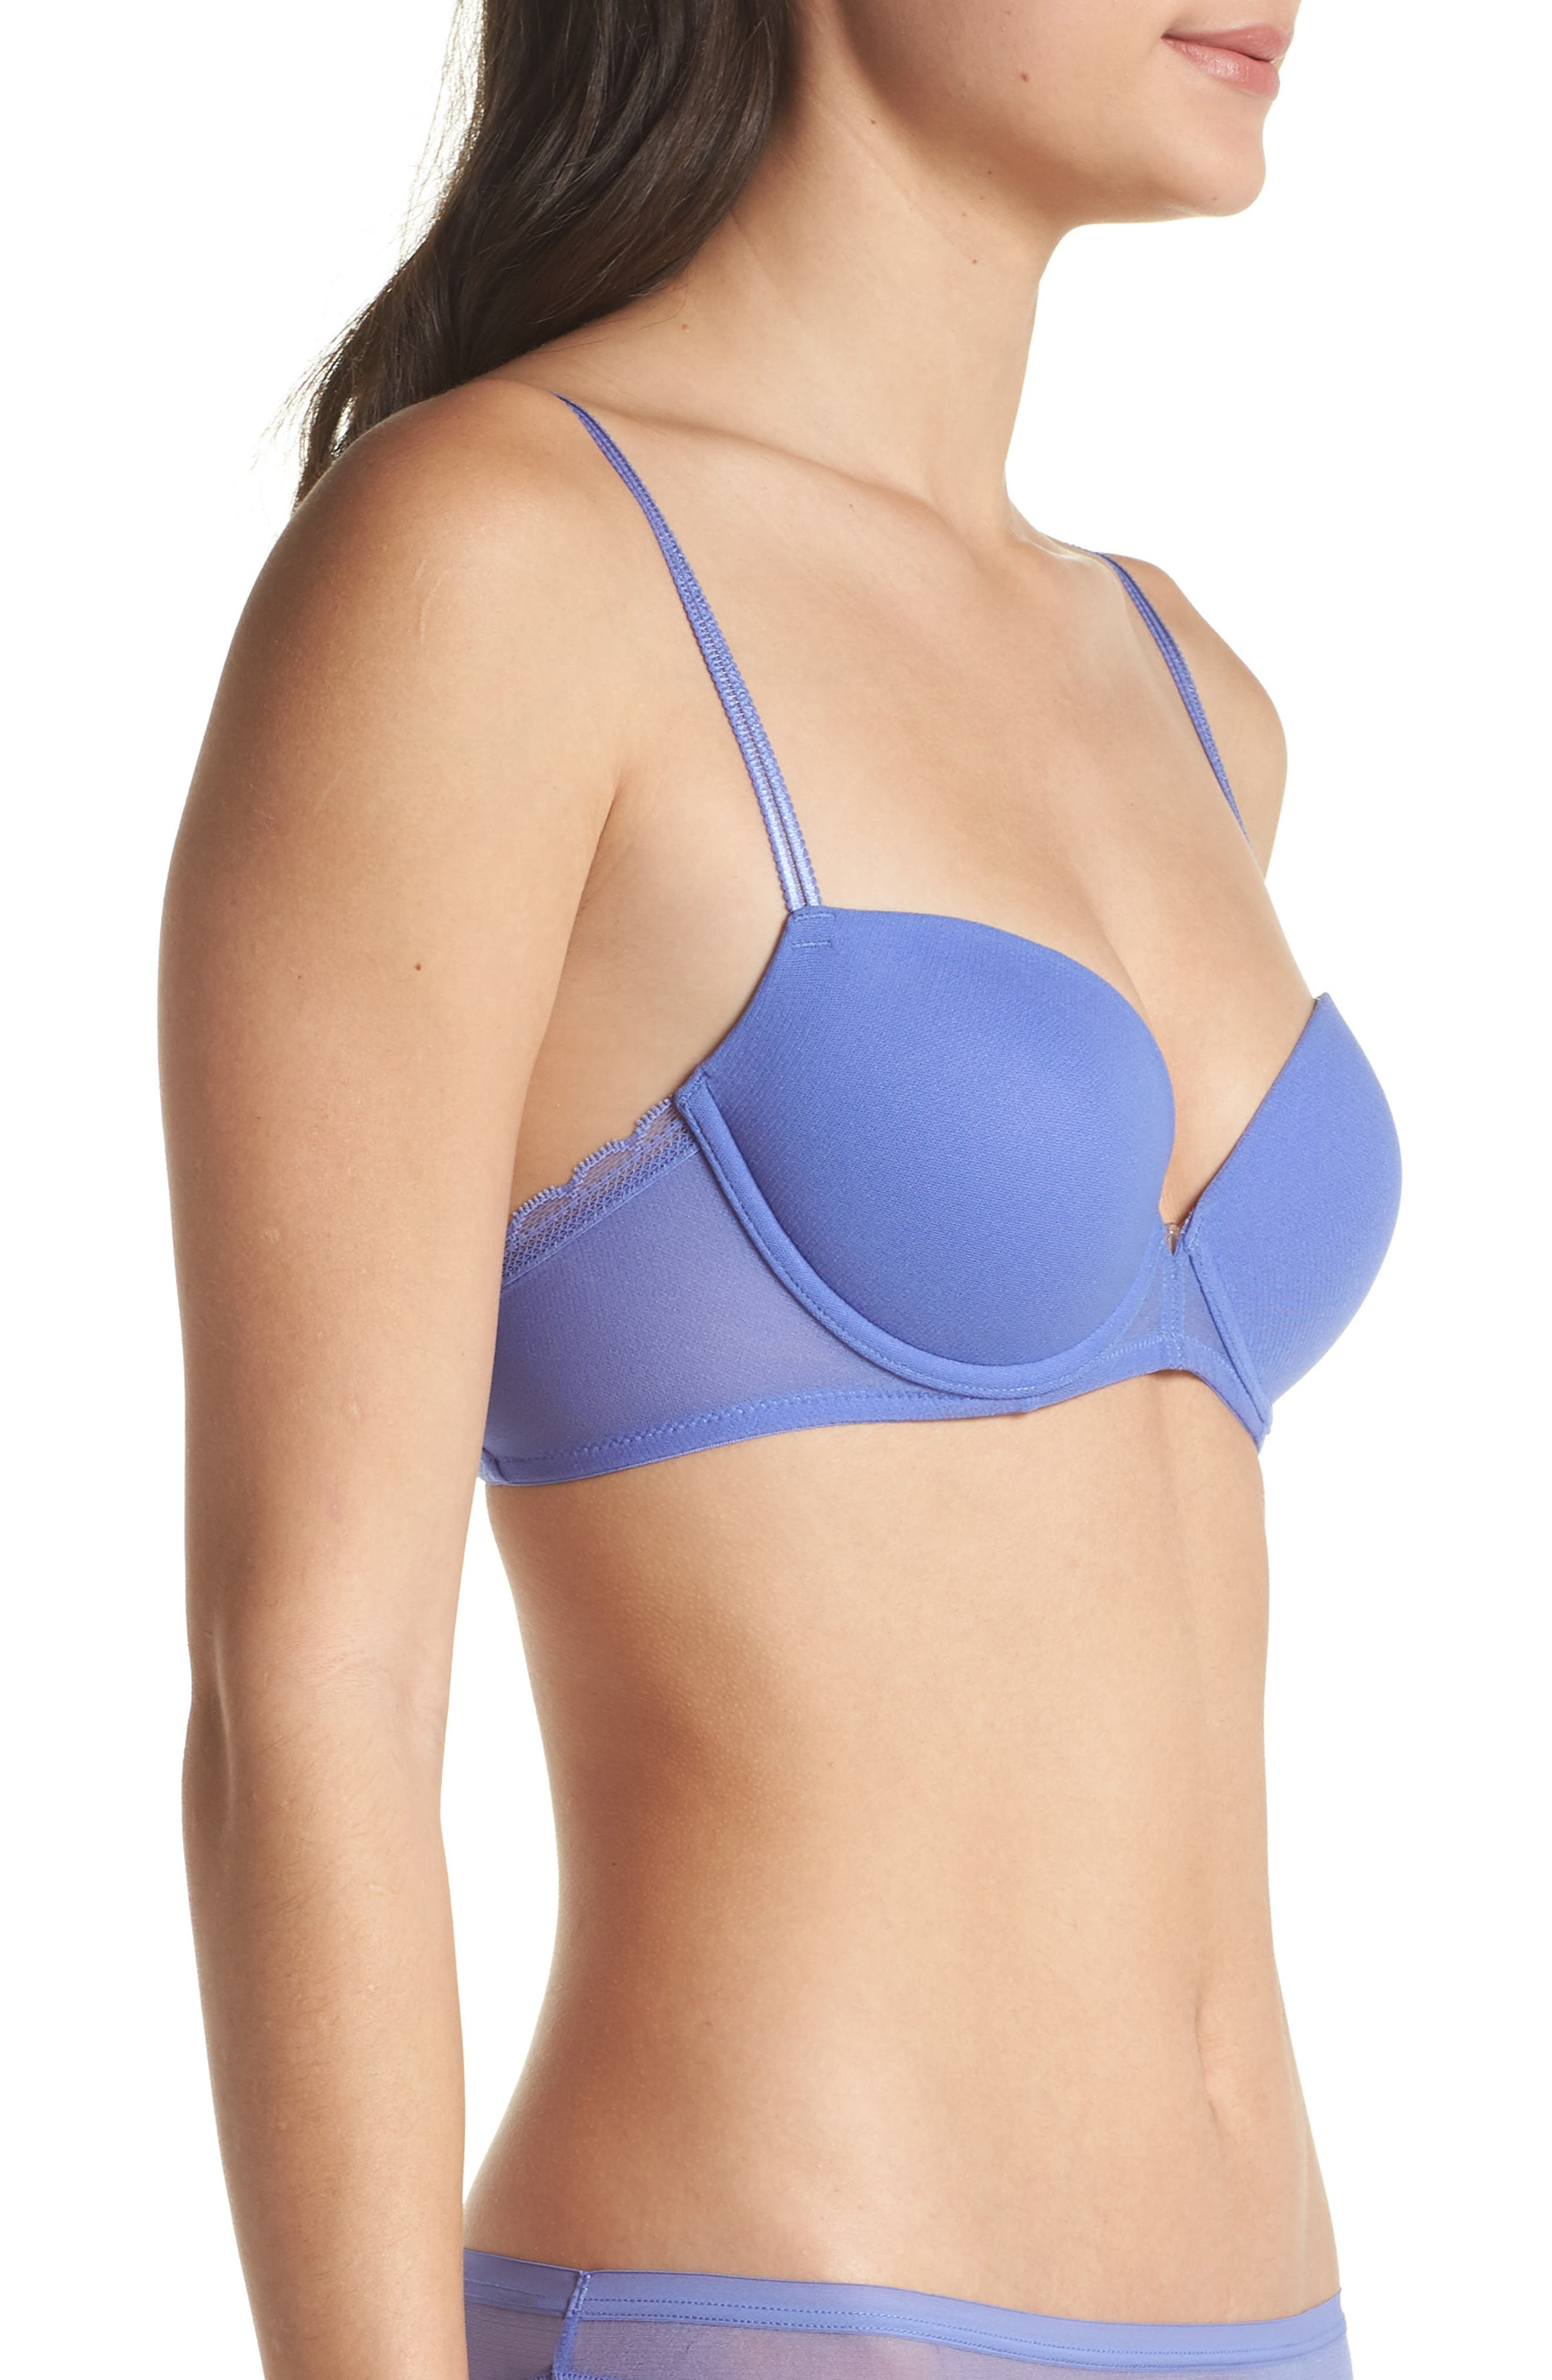 Next to Nothing Underwire Demi Plunge Bra,                             Alternate thumbnail 3, color,                             Surf